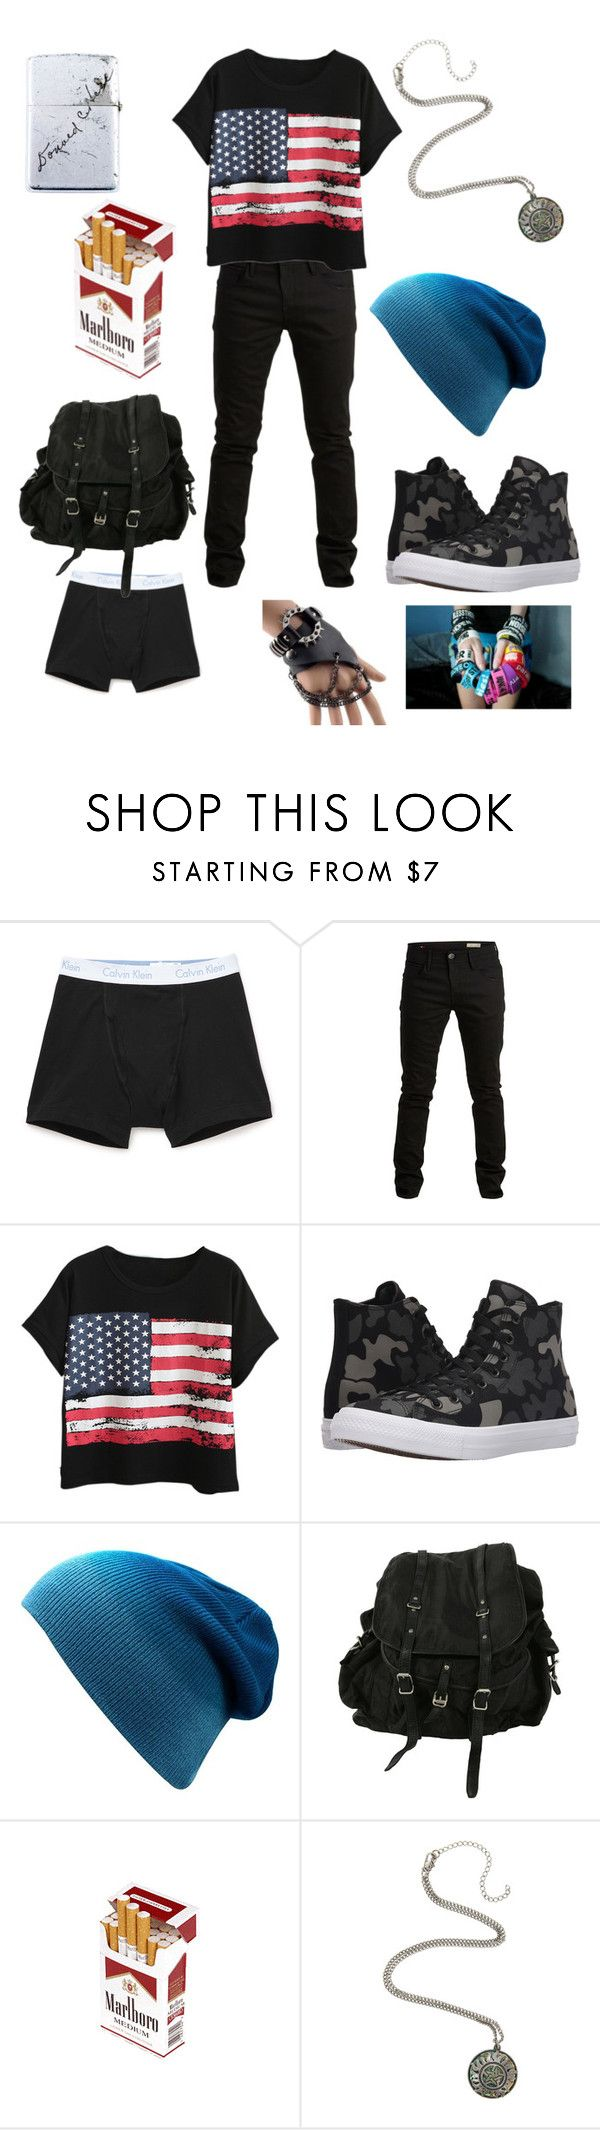 """""""Untitled #131"""" by mt-tomboy-emo-life ❤ liked on Polyvore featuring Calvin Klein Underwear, SELECTED, Chicnova Fashion, Converse, AllSaints, Trend Cool, men's fashion and menswear"""